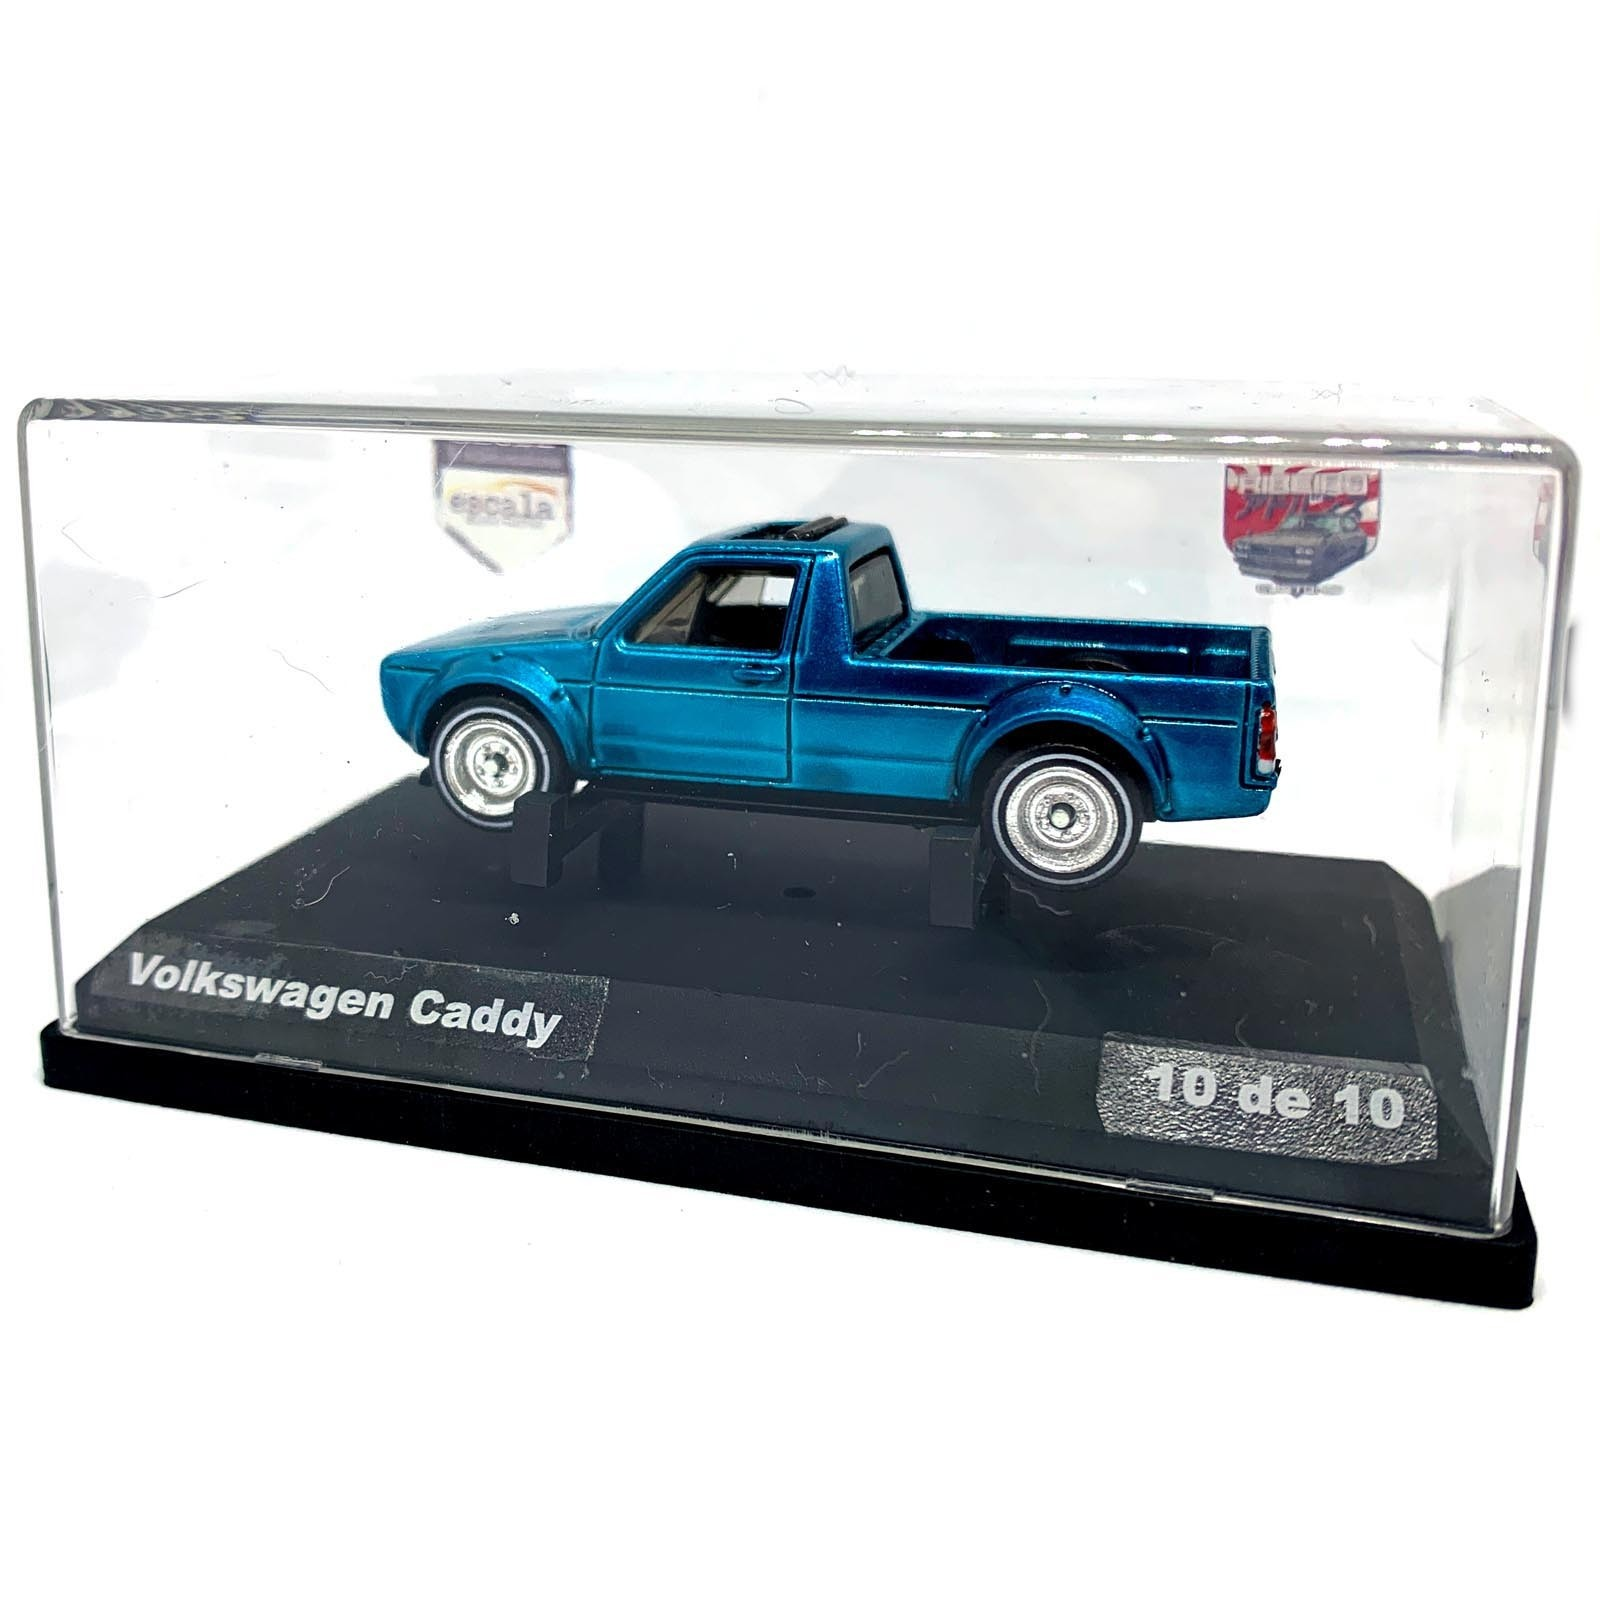 Hot Wheels Customizado Volkswagen Caddy Escala Miniaturas By Mao Na Roda 4x4